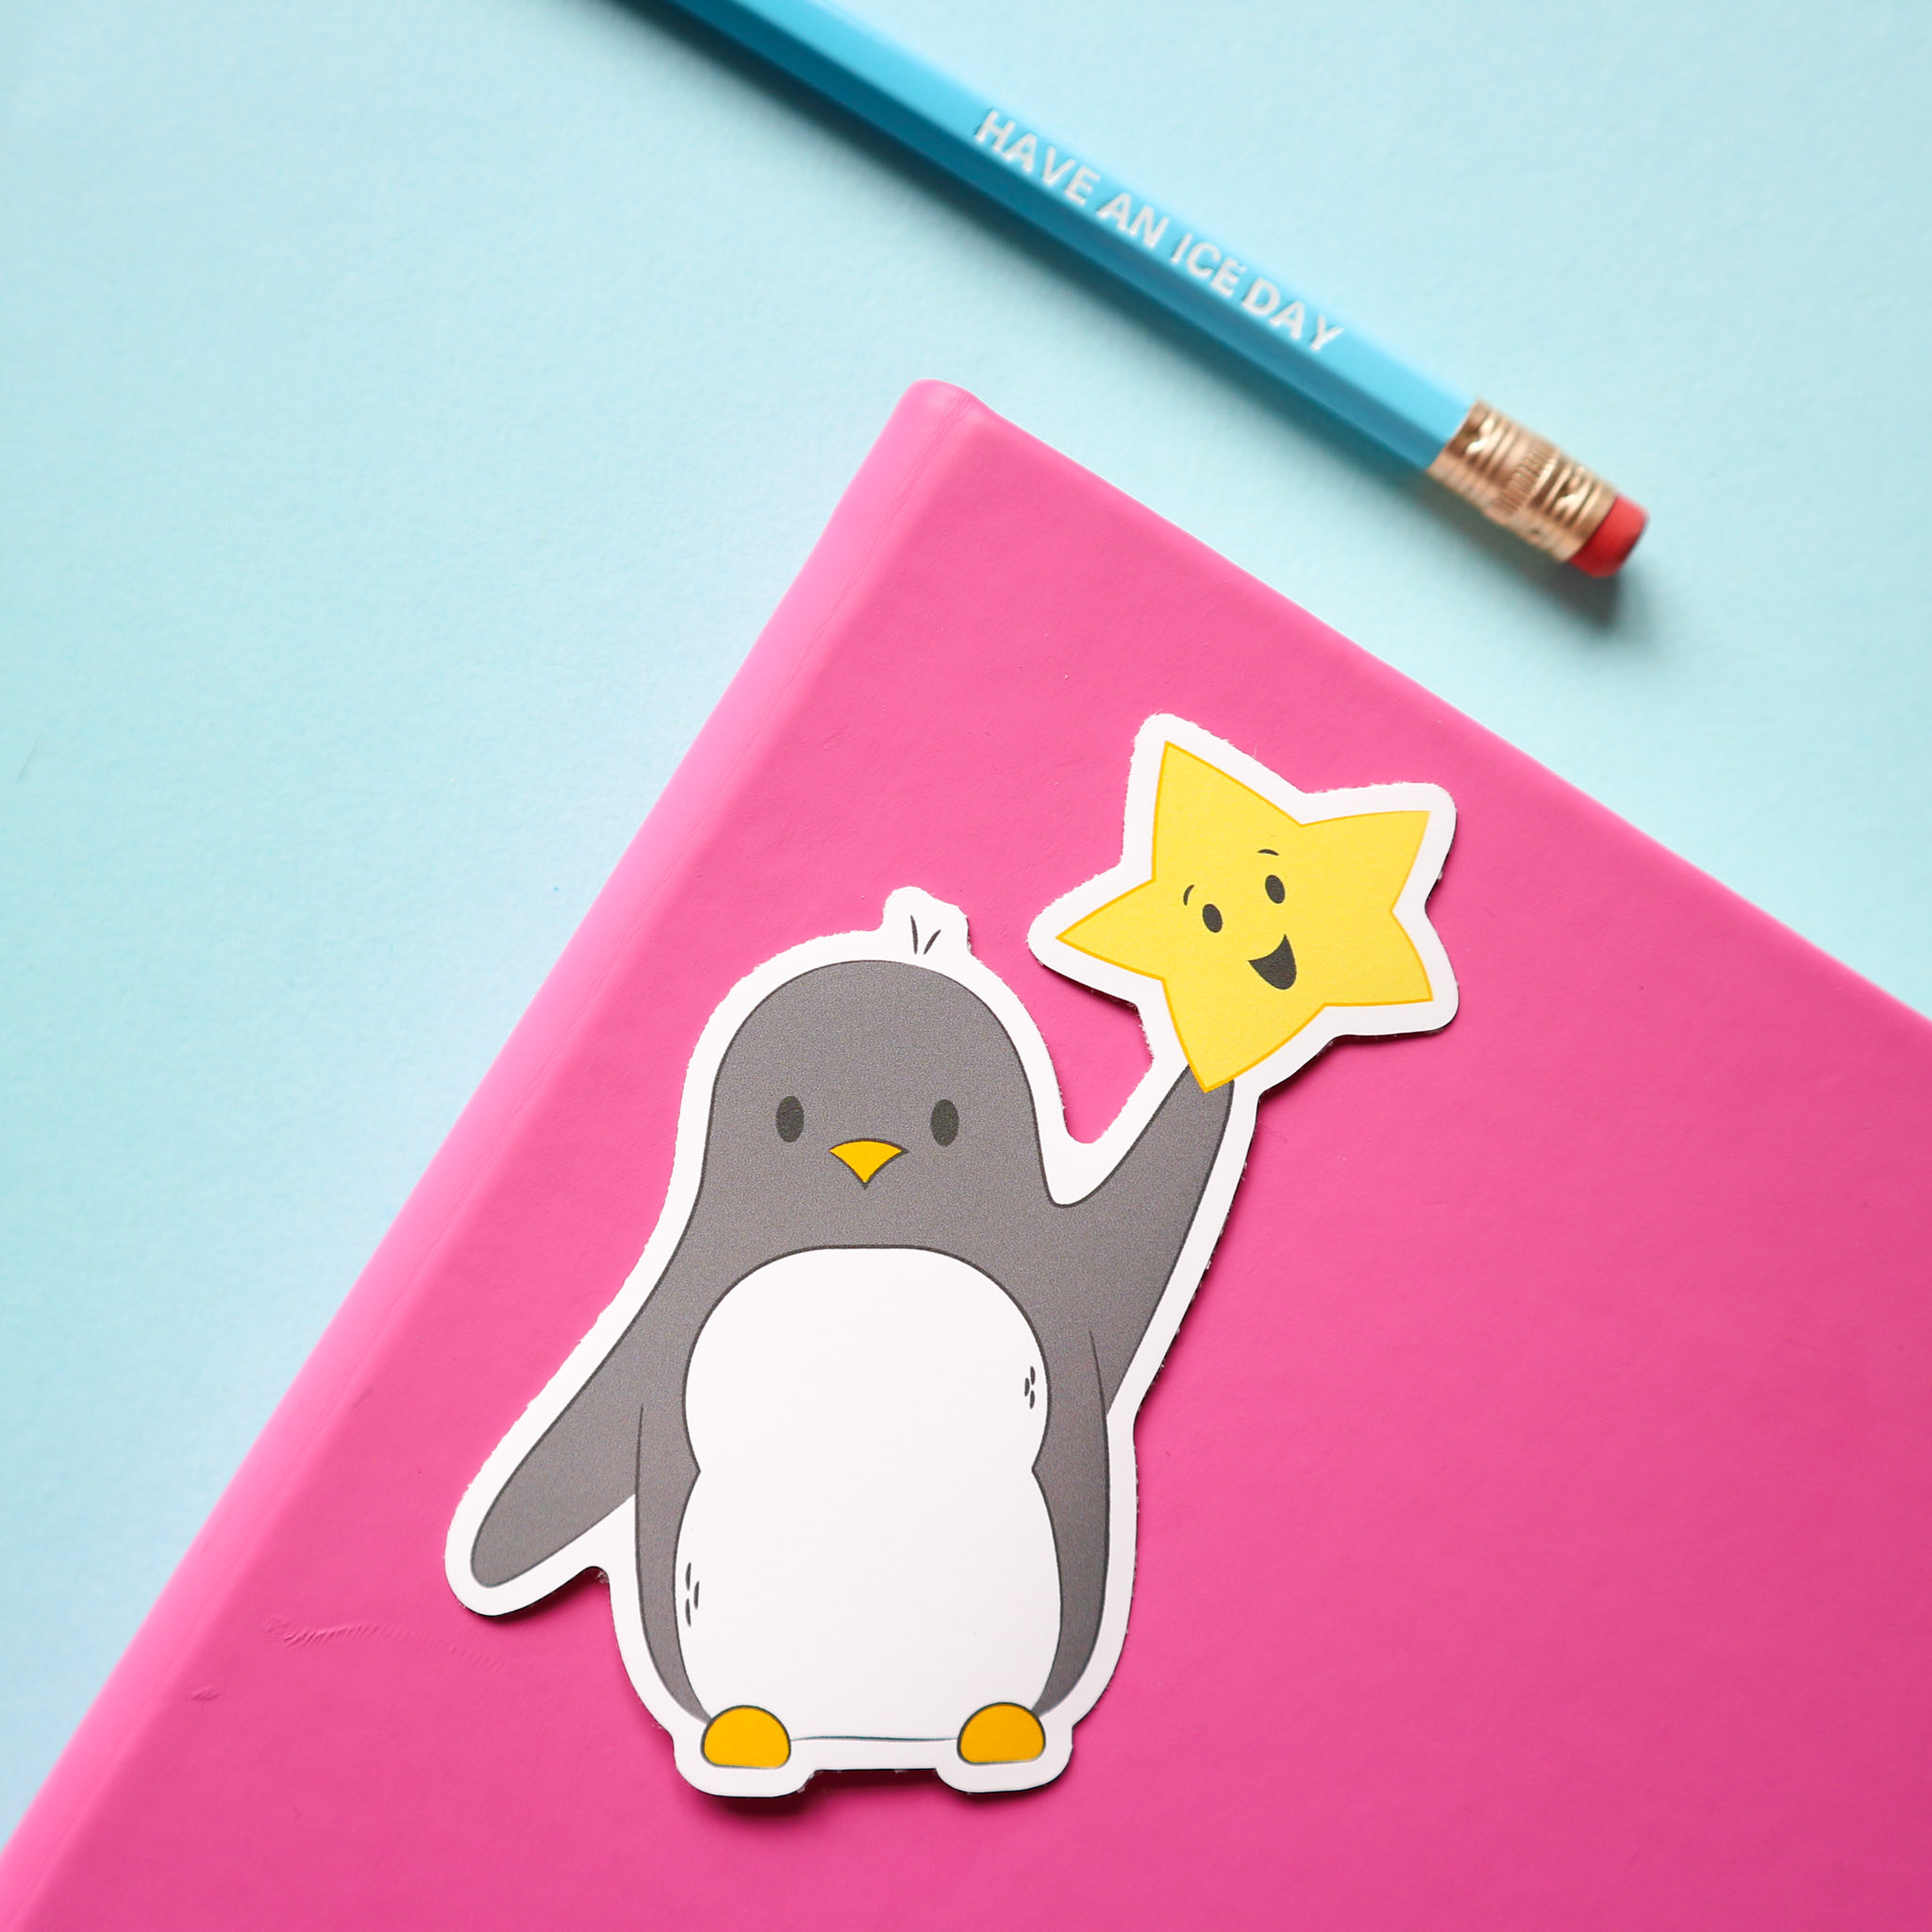 "sticker design of penguin holding a smiling star, against the background of a pink notebook, a pencil that say ""have an ice day"" all on a pale blue background. Pencil not included in this listing."